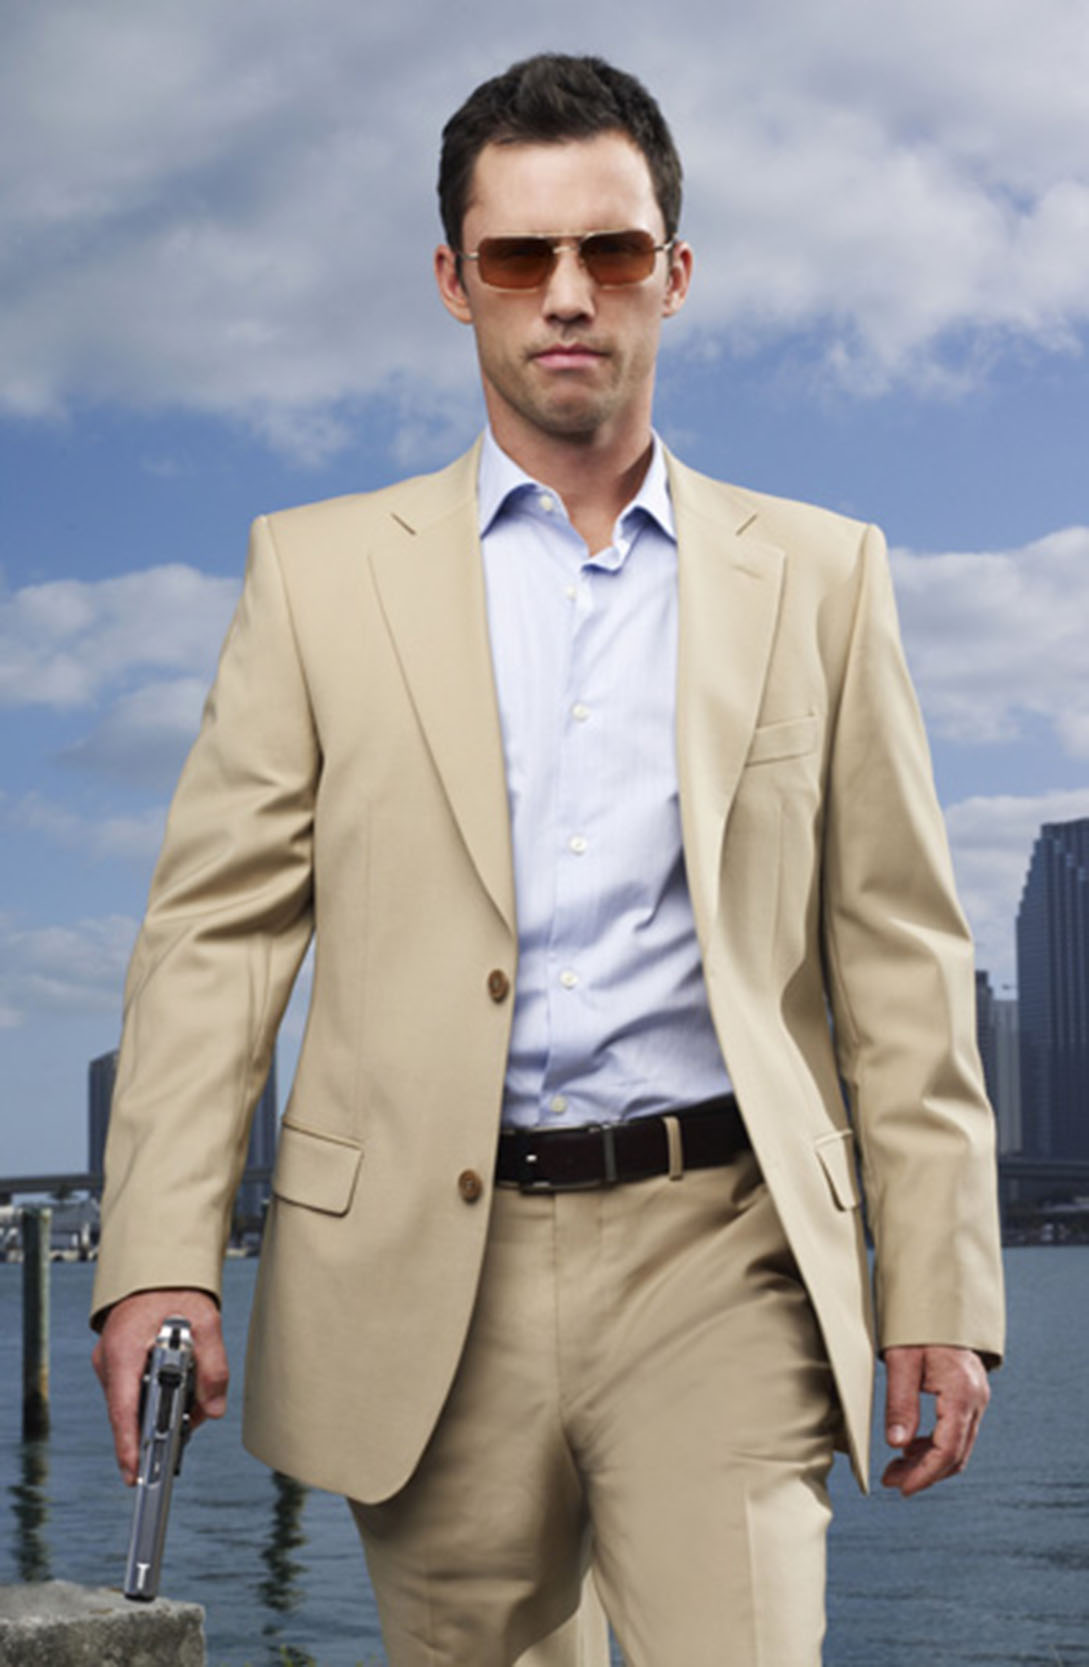 -Victory-Jeffrey-Donovan-oliver-peoples-sunglasses_the+spectacle-trolley+square-salt+lake+city-DebaDoTell